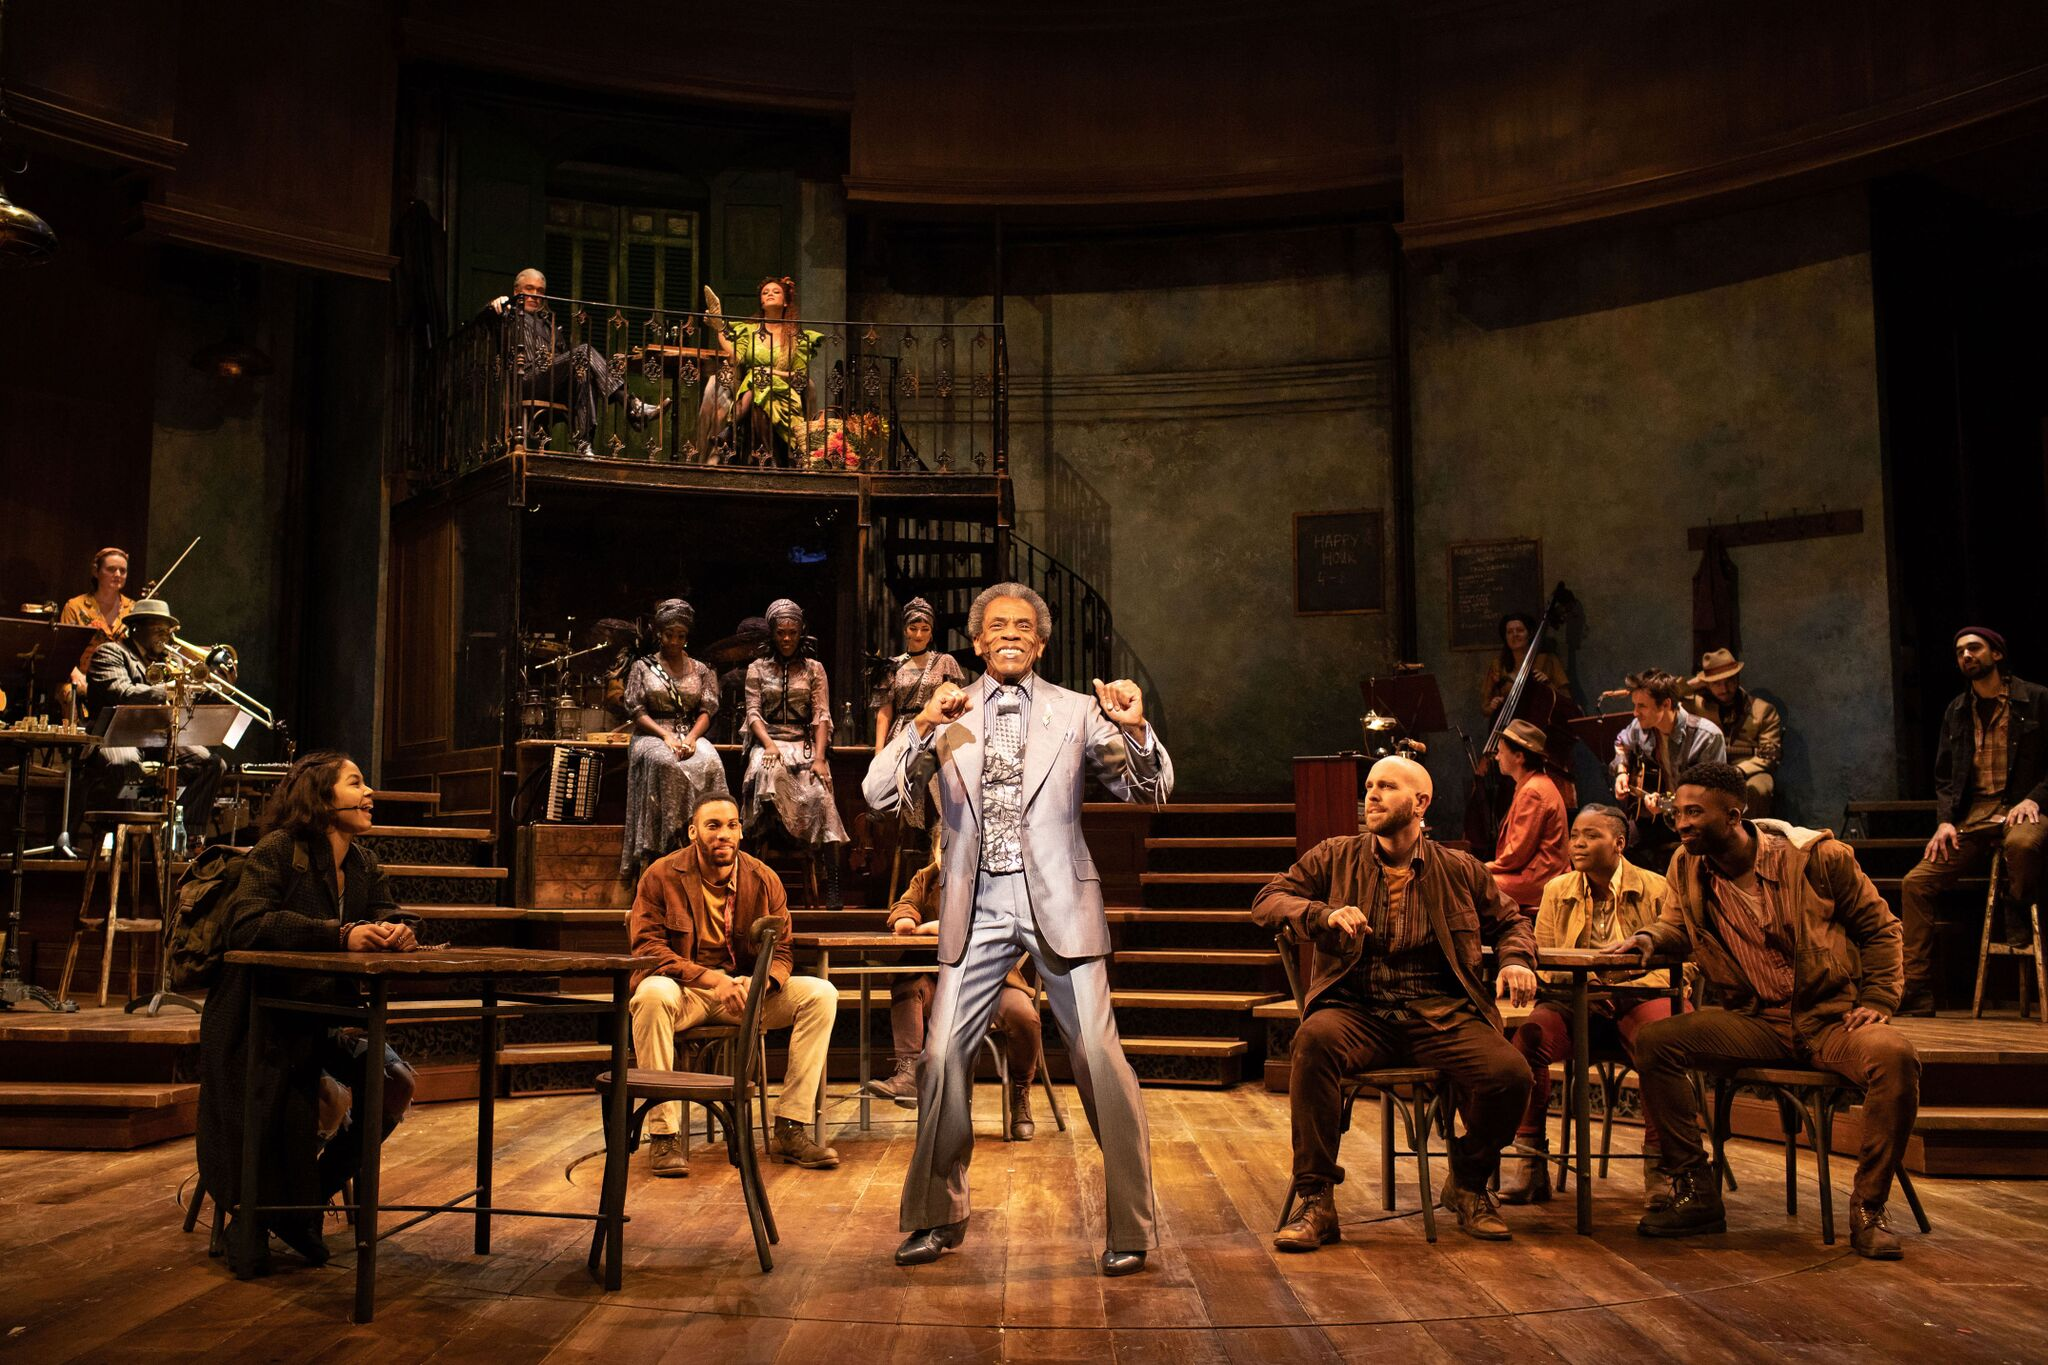 Hadestown André De Shields (Hermes) and the company of Hadestown at National Theatre (c) Helen Maybanks